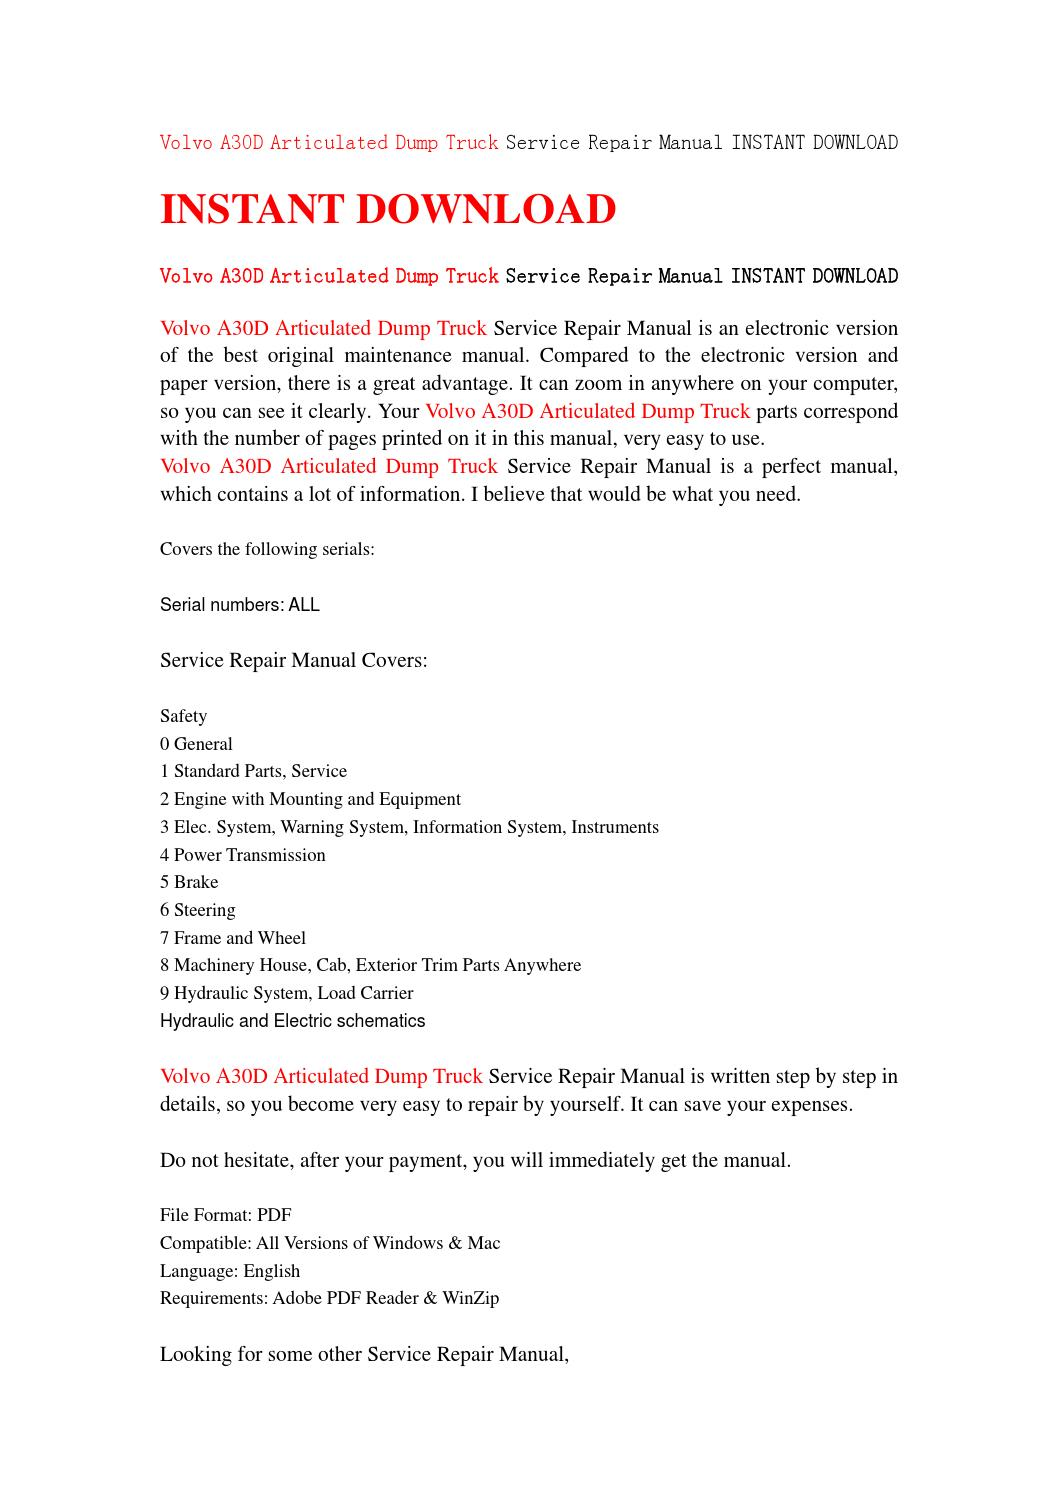 hight resolution of volvo a30d articulated dump truck service repair manual instant download by jfhsefjse issuu